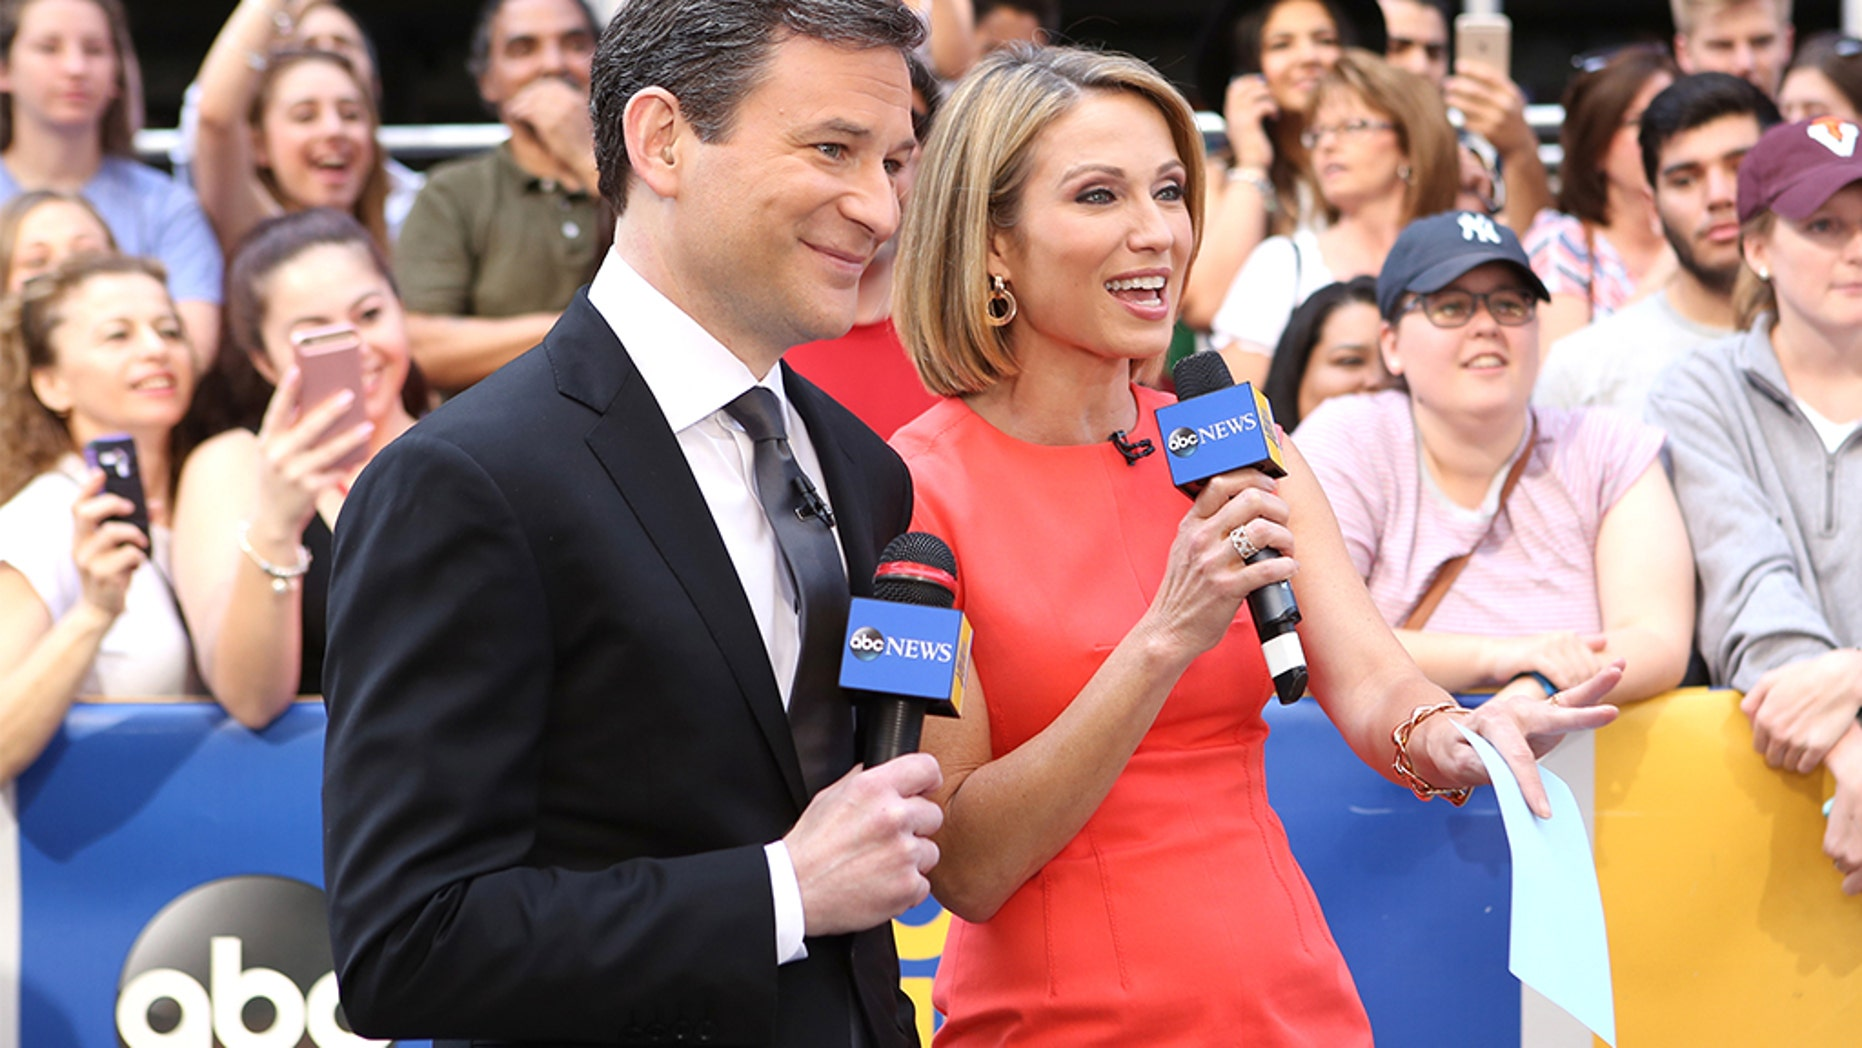 ABC News anchor Dan Harris questioned why Republicans have any chance in the midterm elections. (Photo by Fred Lee/ABC via Getty Images)